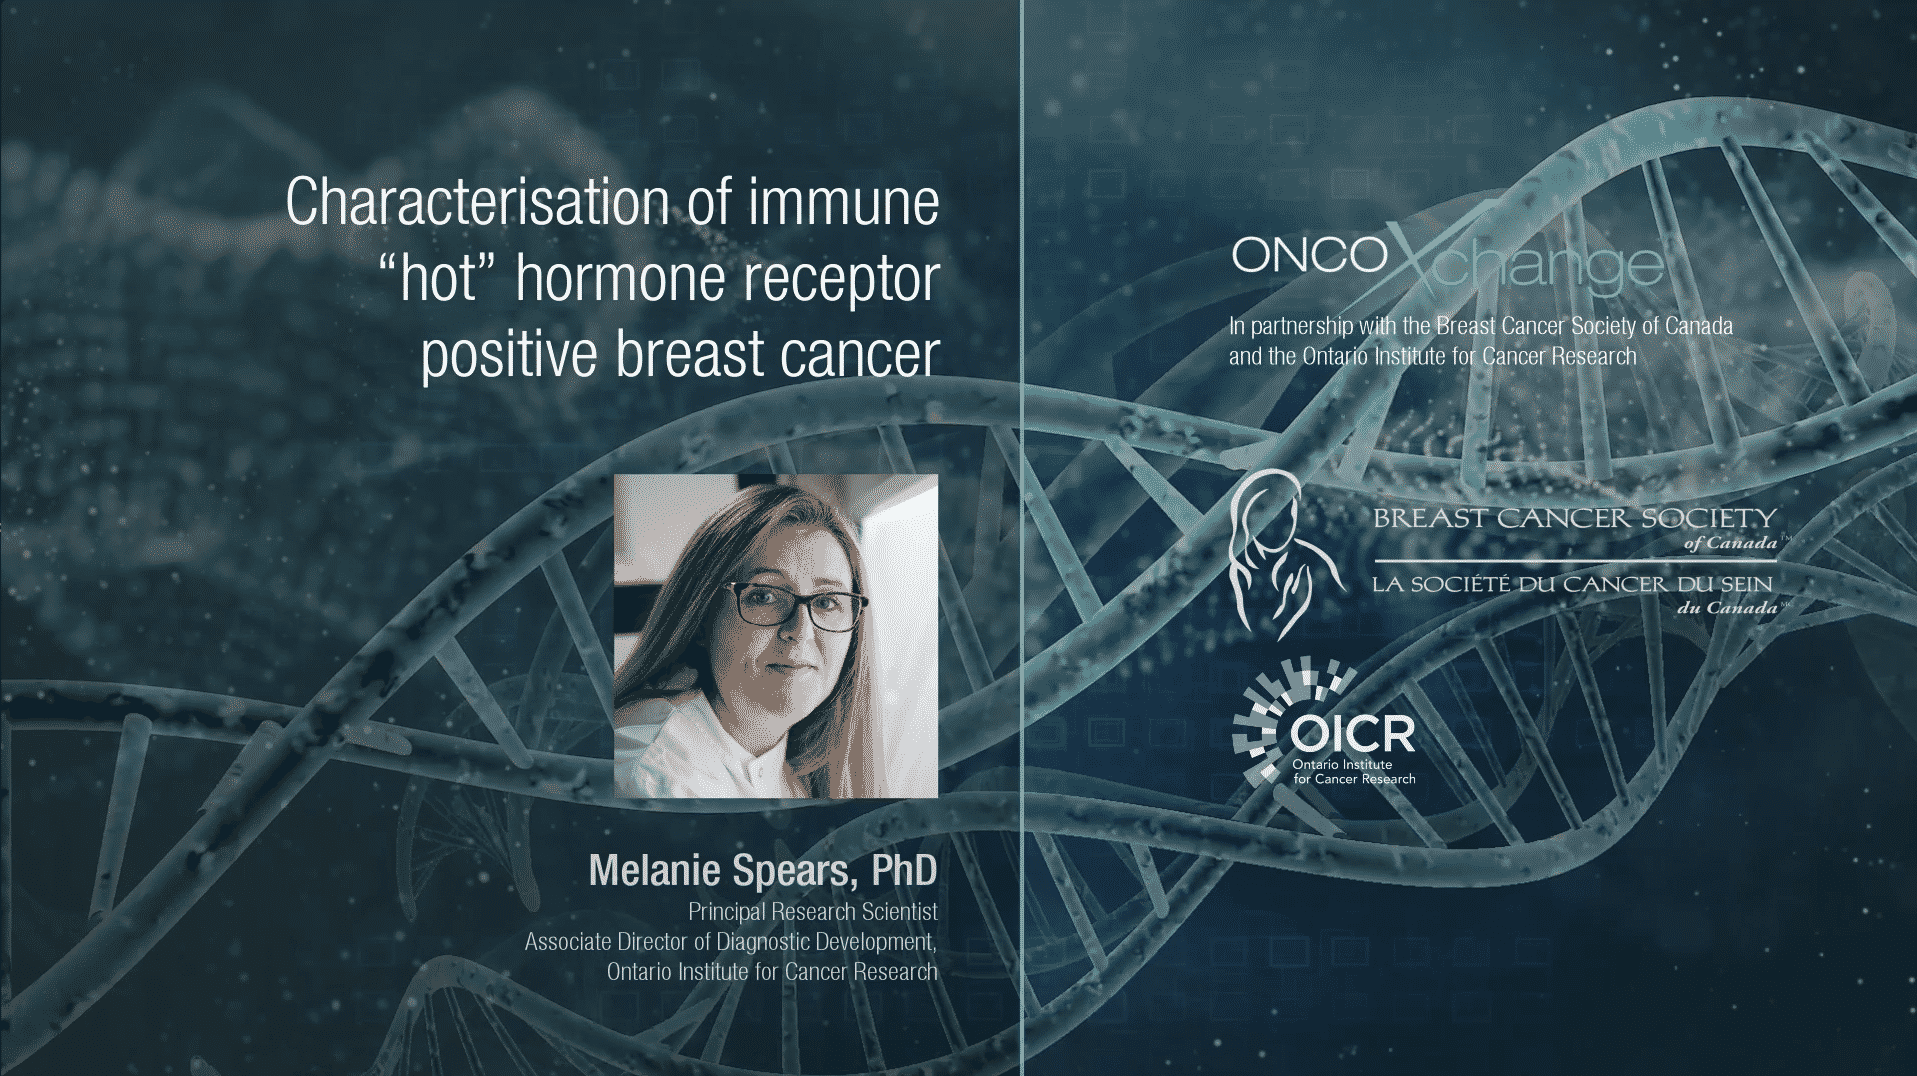 New Breast Cancer Research Funding Announcement – May 28, 2021